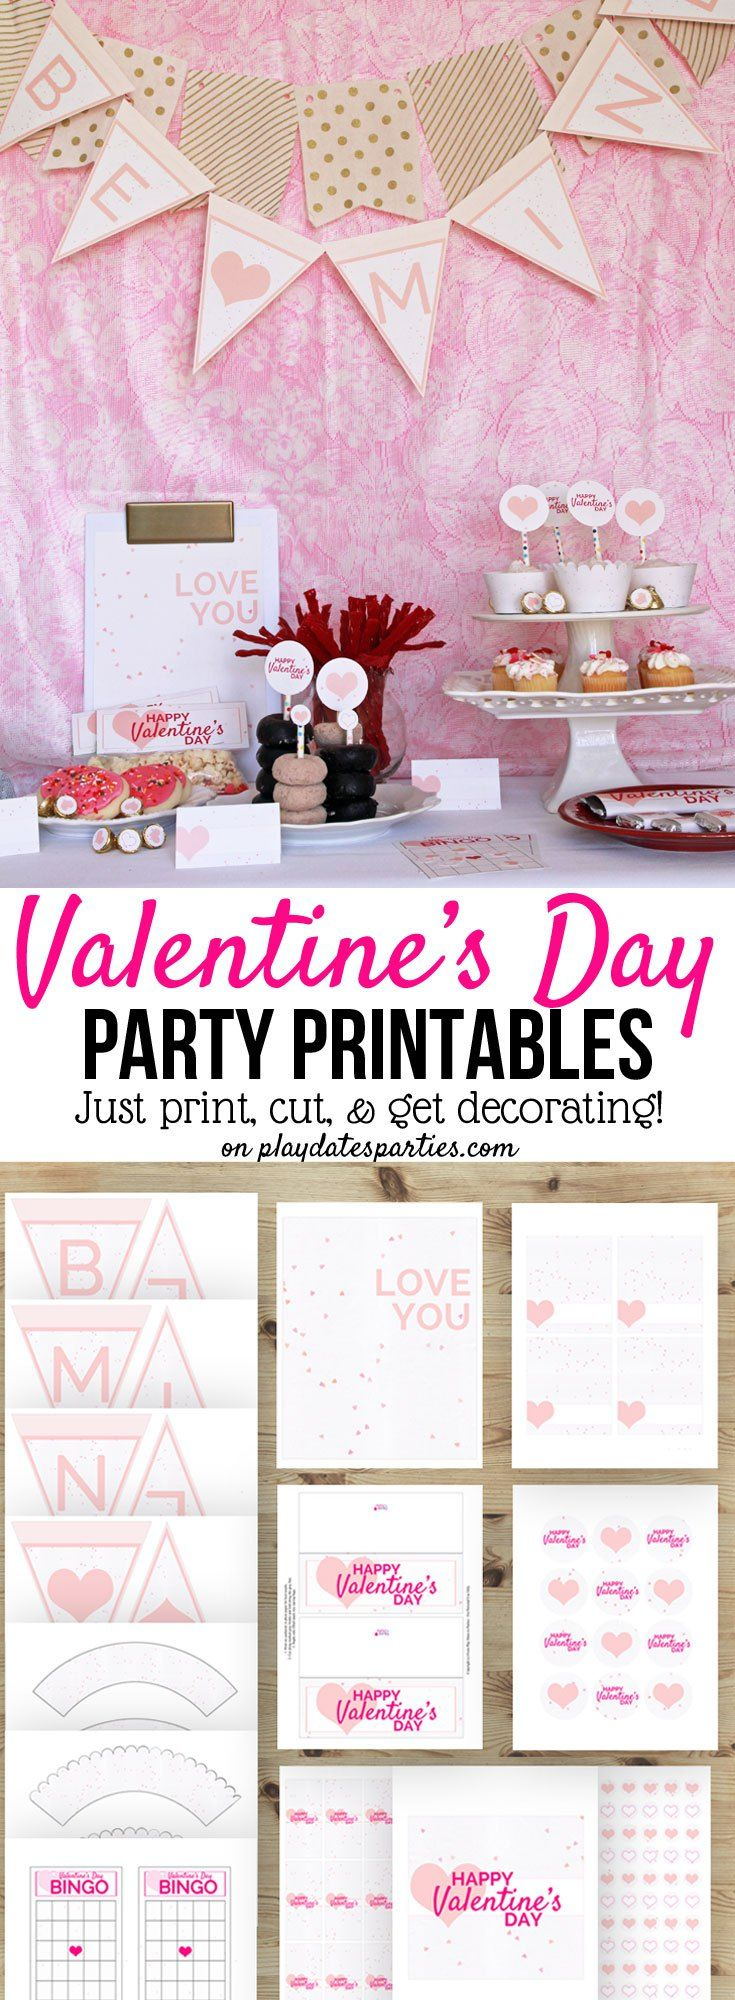 Valentine's Day Party Printables Package